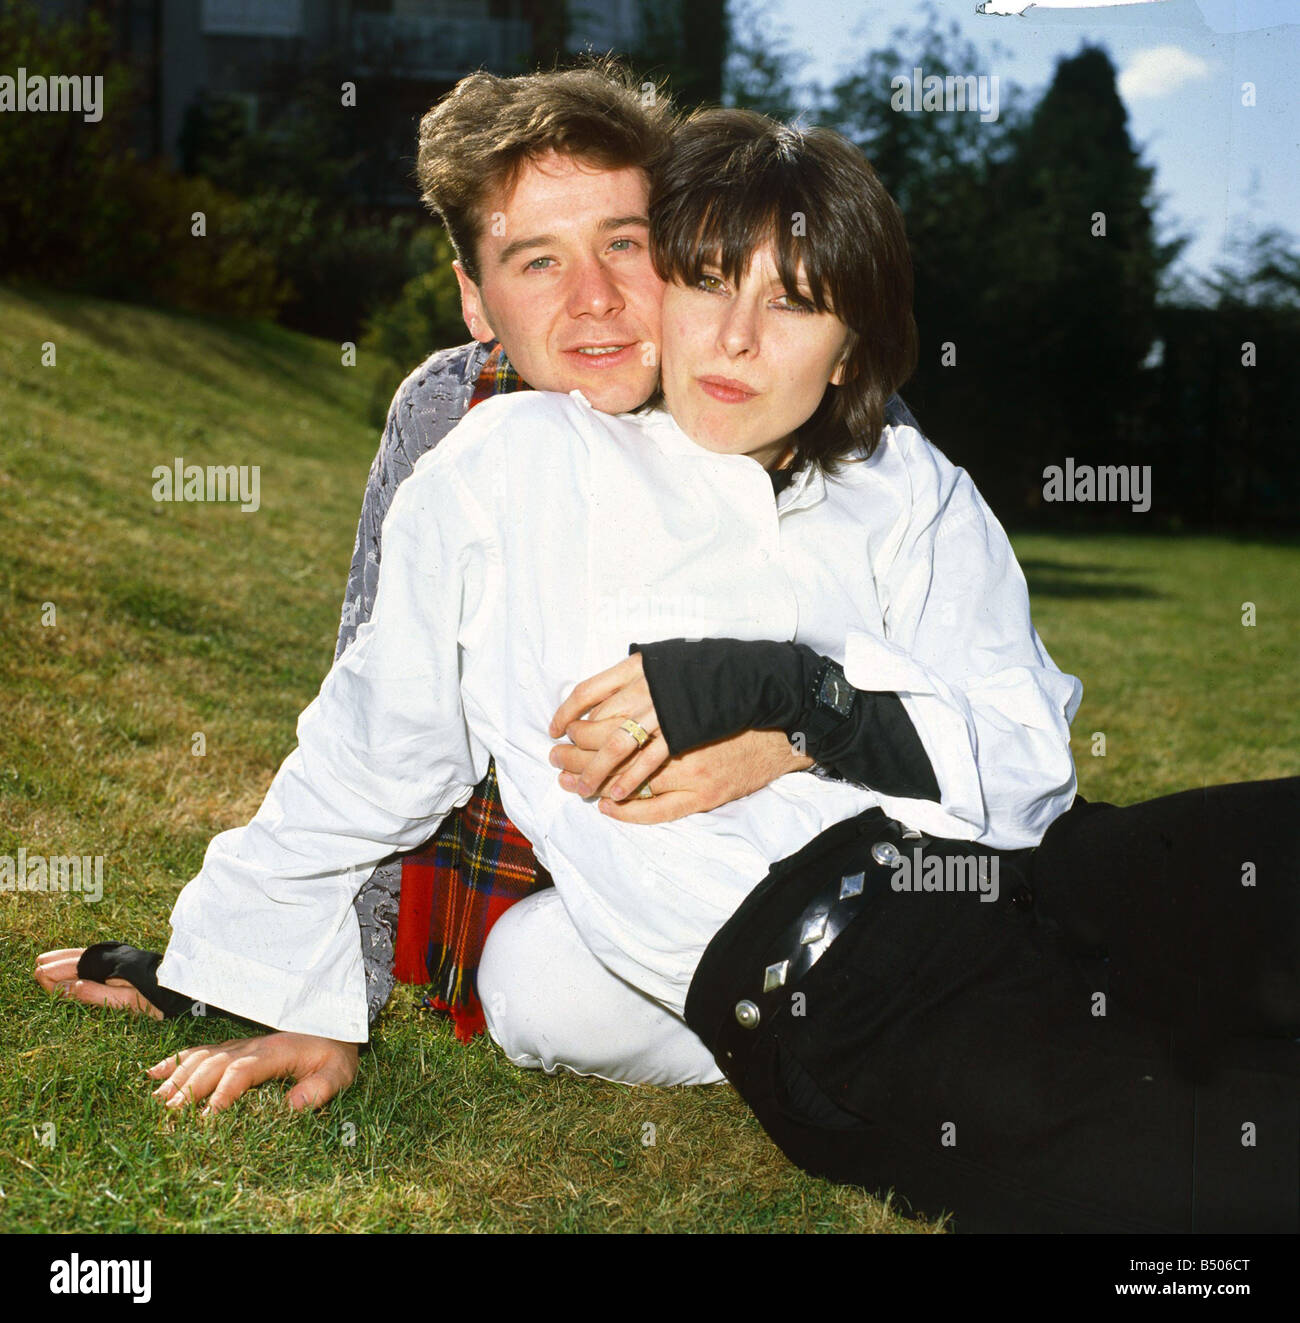 chrissie hynde and jim kerr relationship